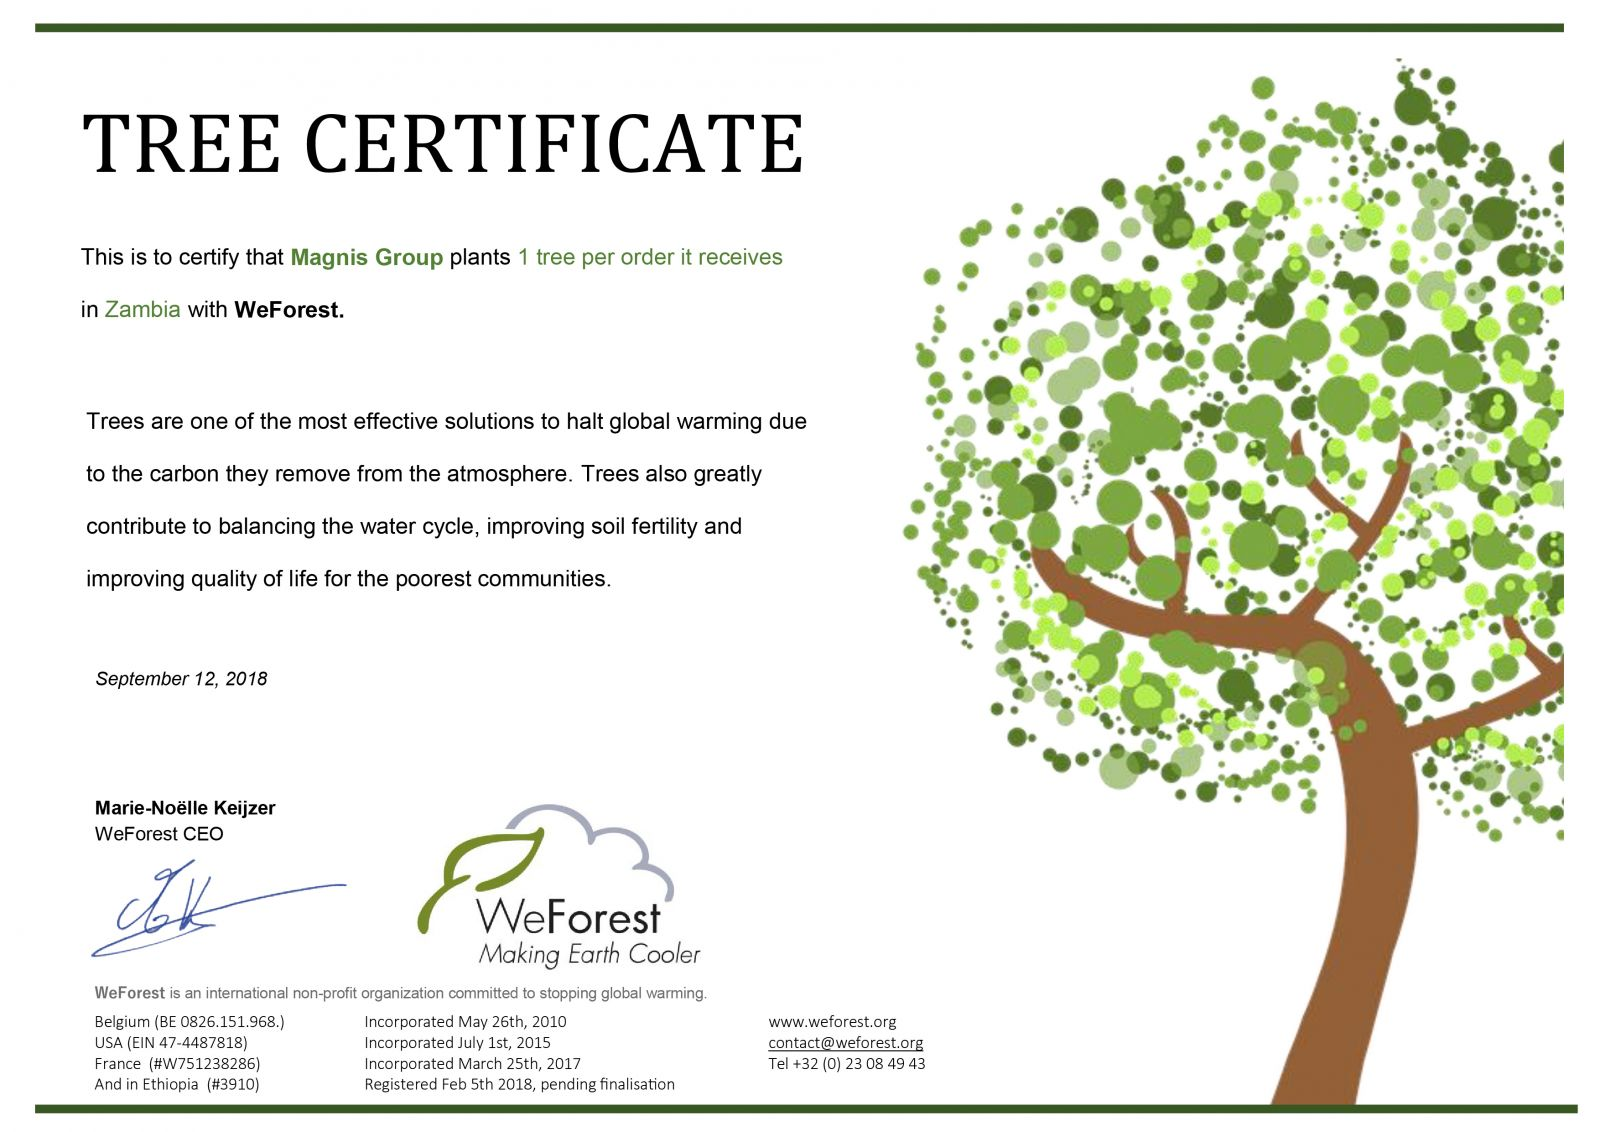 Our WeForest certificate